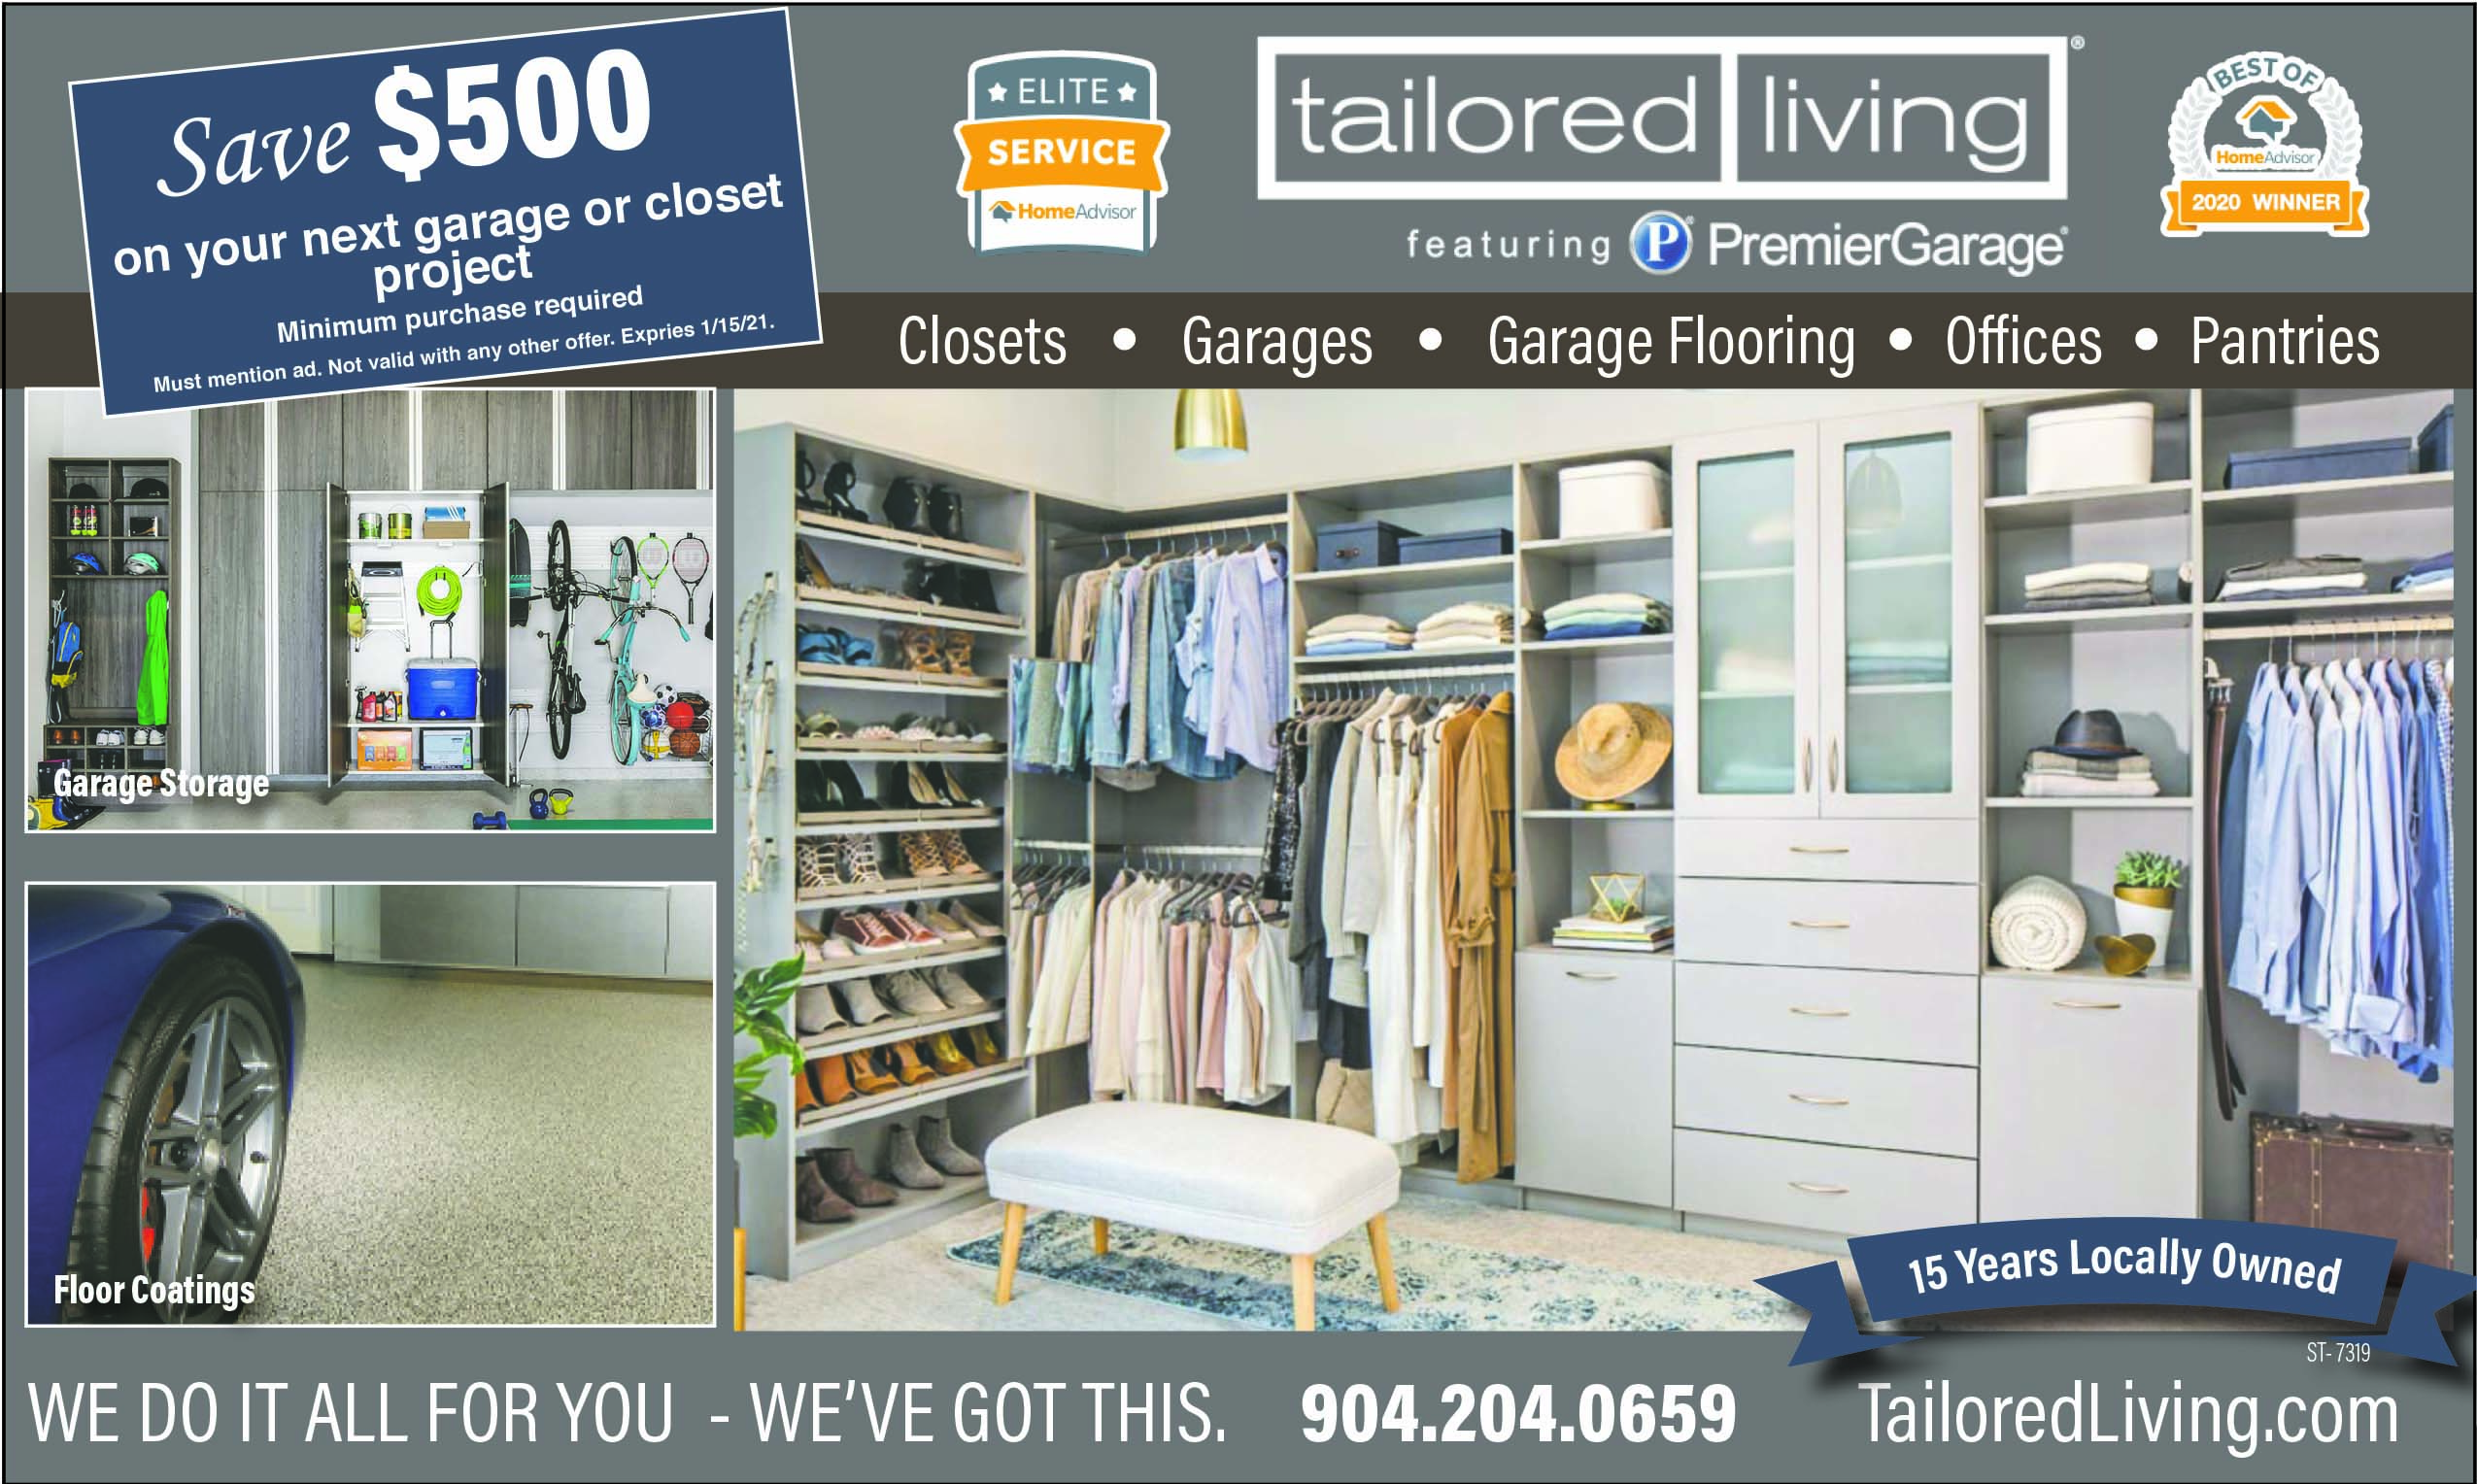 Tailored living We do it all for you we've got this! Closets, Garages, garage flooring, offices, pantries